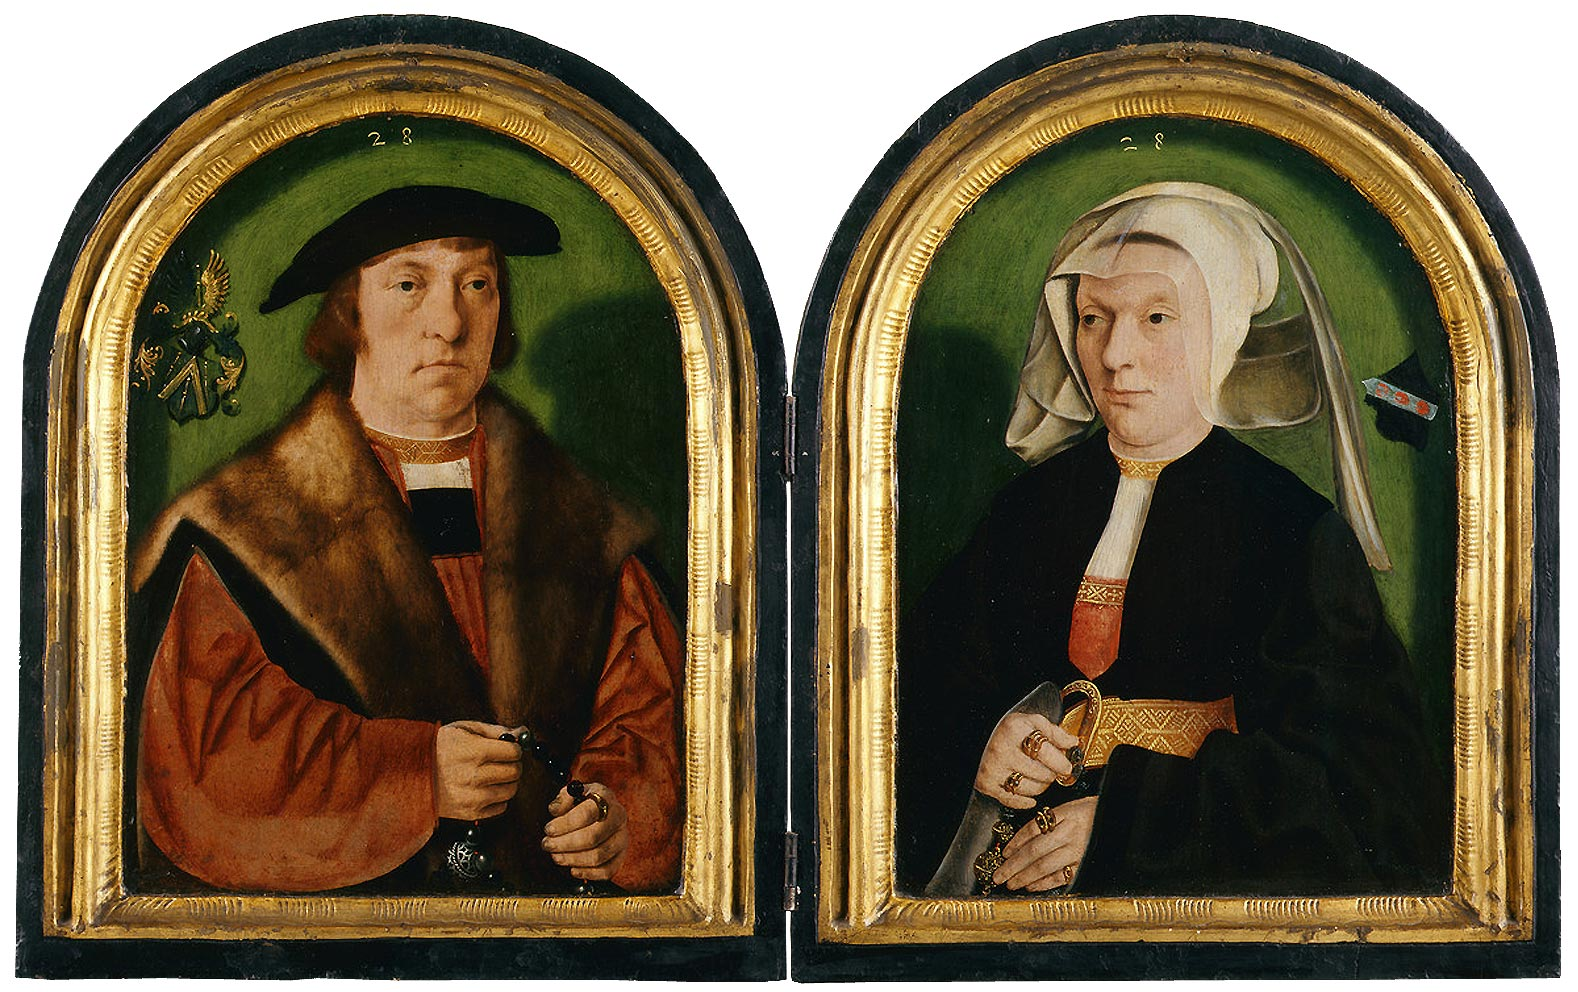 Barthel Bruyn l'Ancien Portrait de Gerhard et Anna Pilgrum 1528, Wallraf-Richartz-Museum, Koln